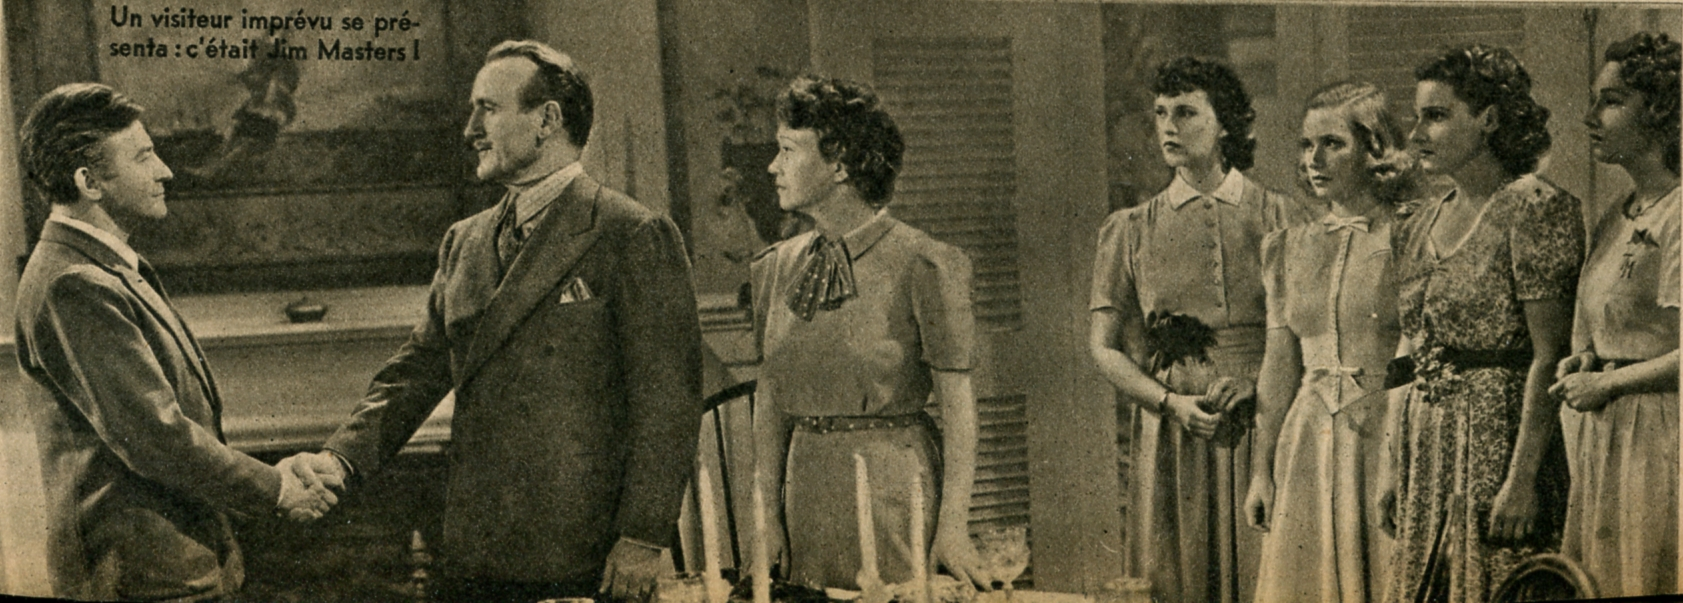 Claude Rains, Fay Bainter, Donald Crisp, Lola Lane, Priscilla Lane, Rosemary Lane, and Gale Page in Daughters Courageous (1939)